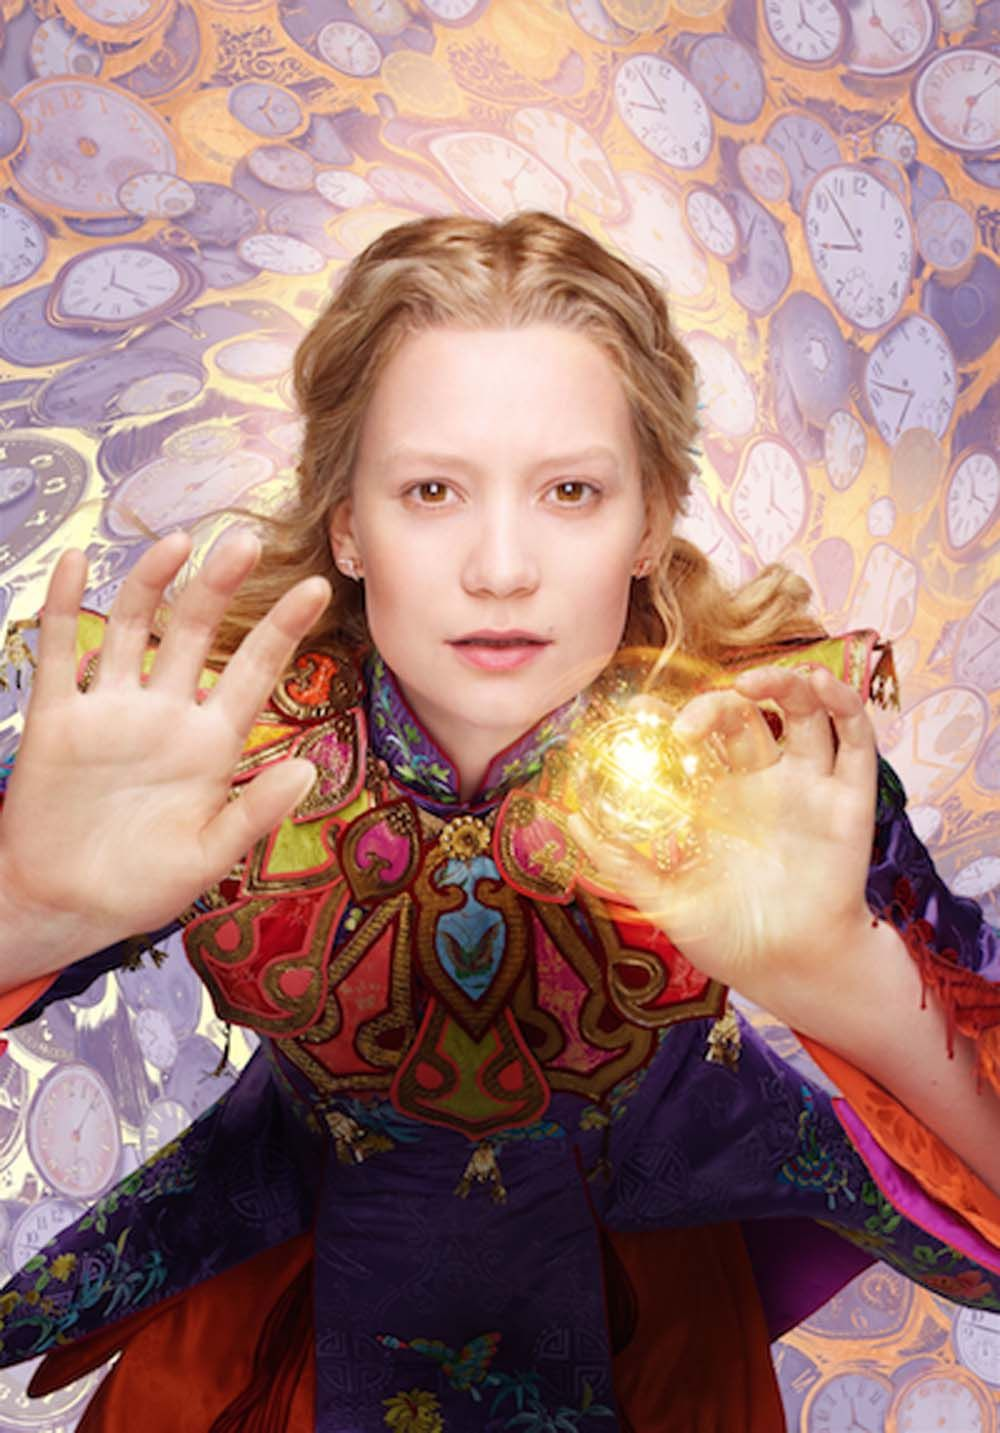 New Alice Through The Looking Glass Images Get A Closer Look At